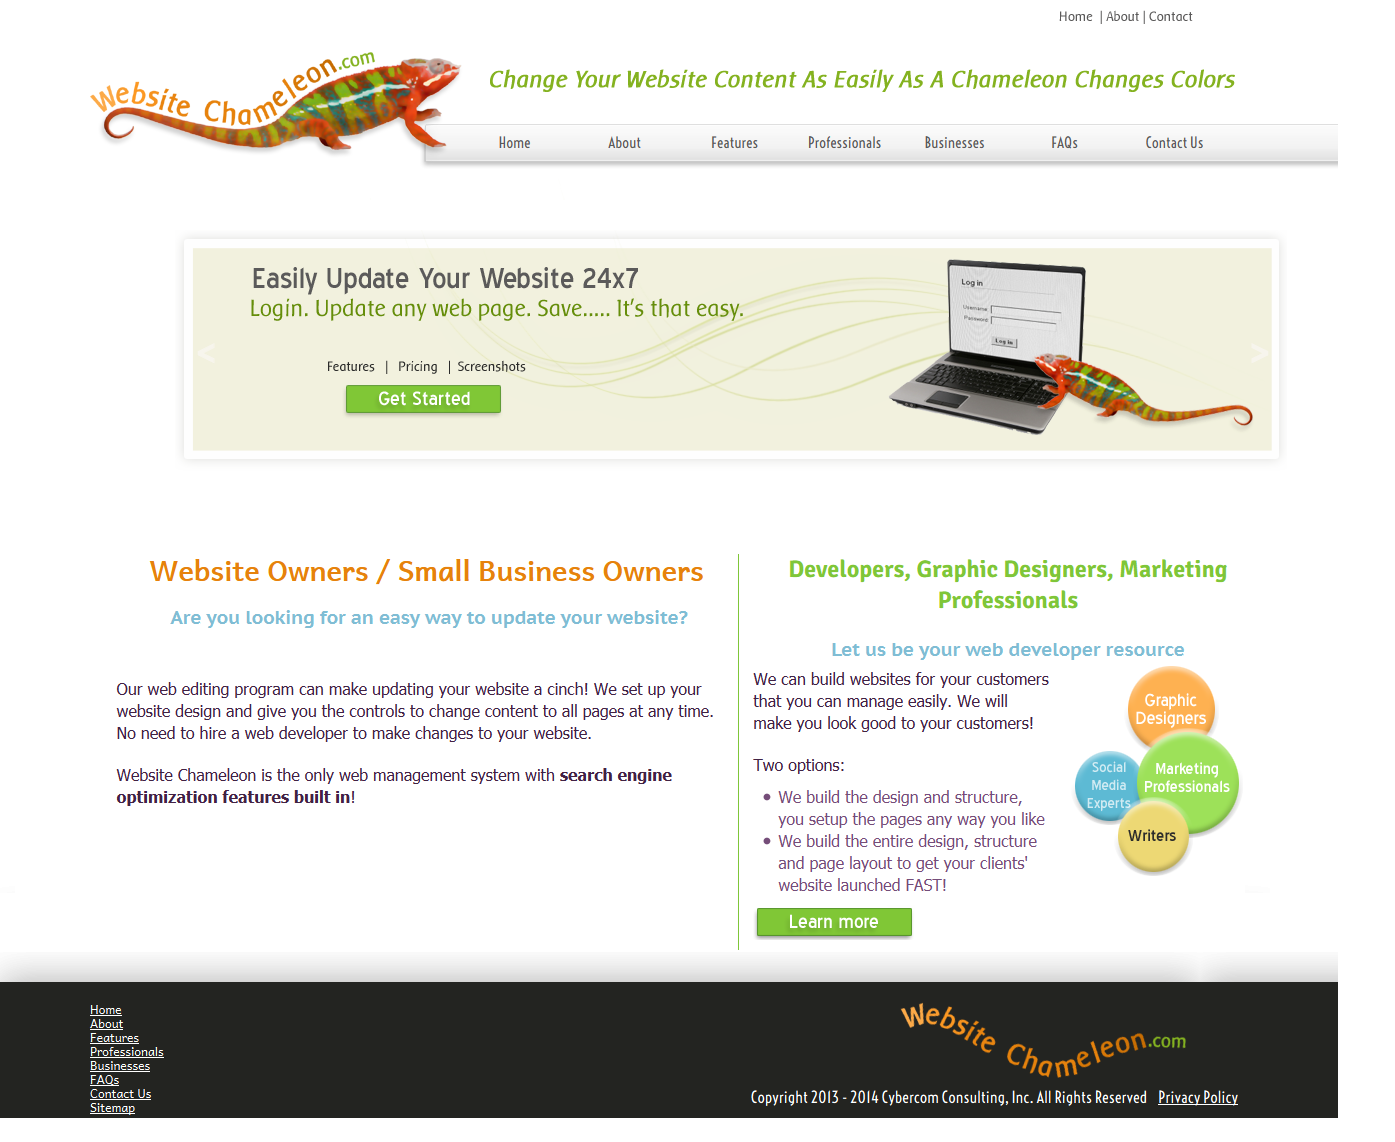 Website Chameleon™ Content Management System to preview of edits made to your website